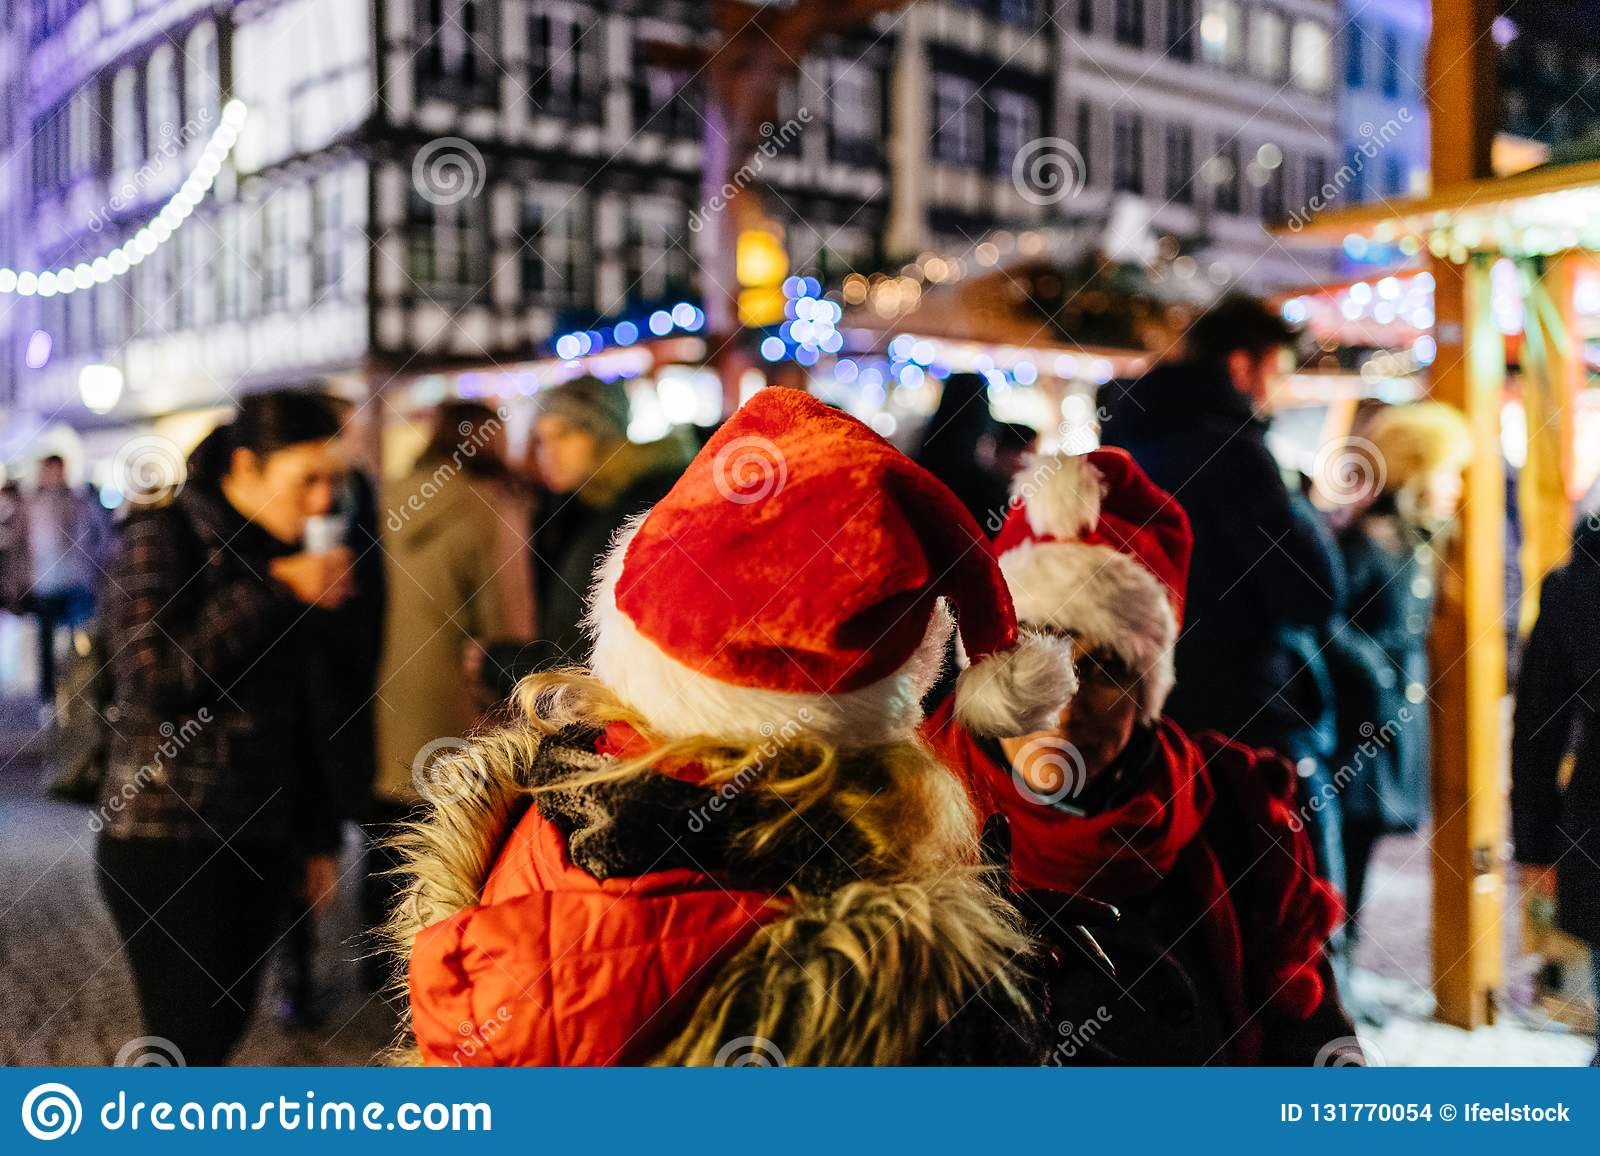 Two Adult Women Wearing Funny Christmas Hats Editorial Stock Image ... 8ff87f235d